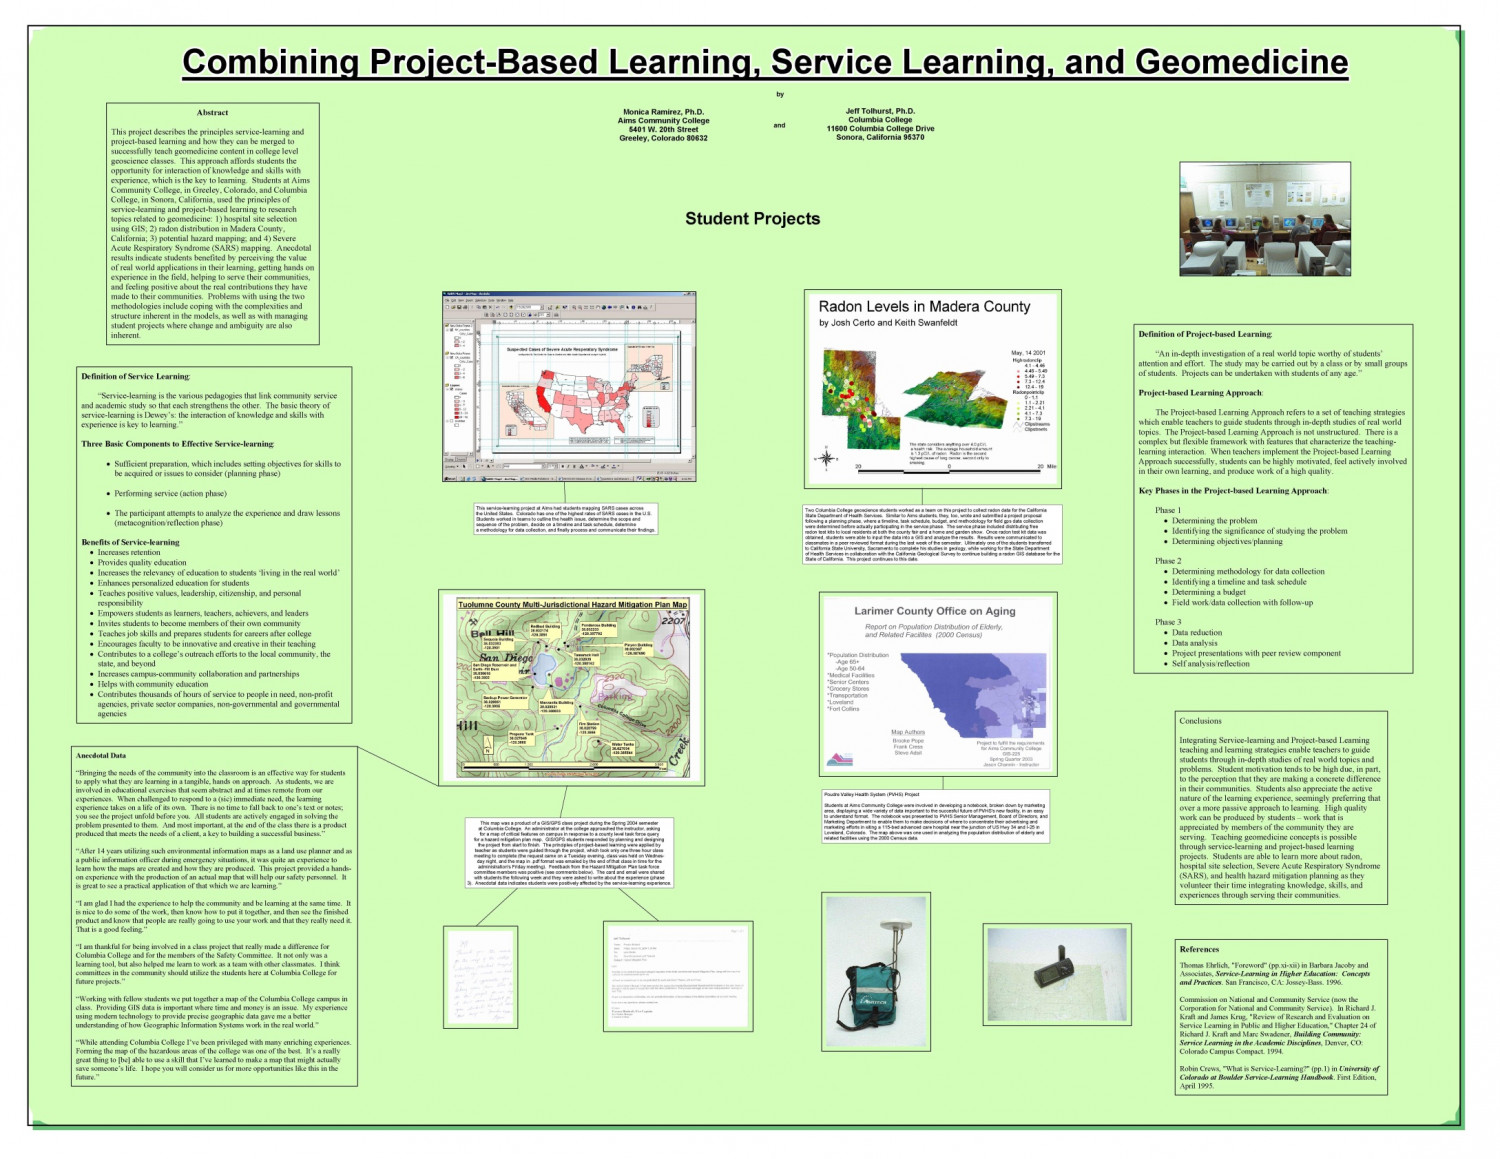 Service Learning and Geomedicine Infographic